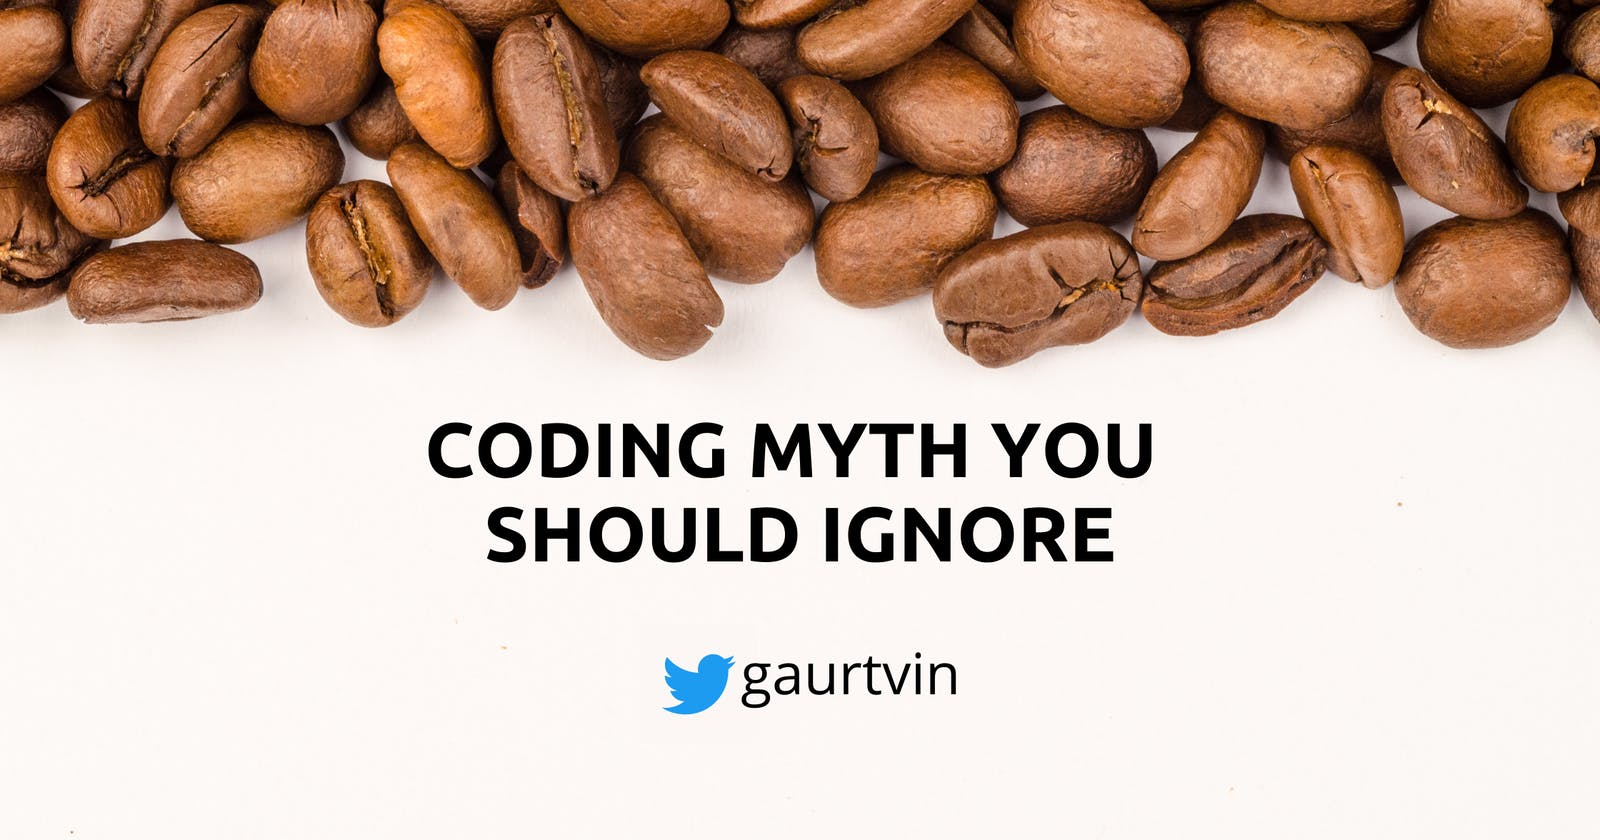 Coding myths that you should Ignore.